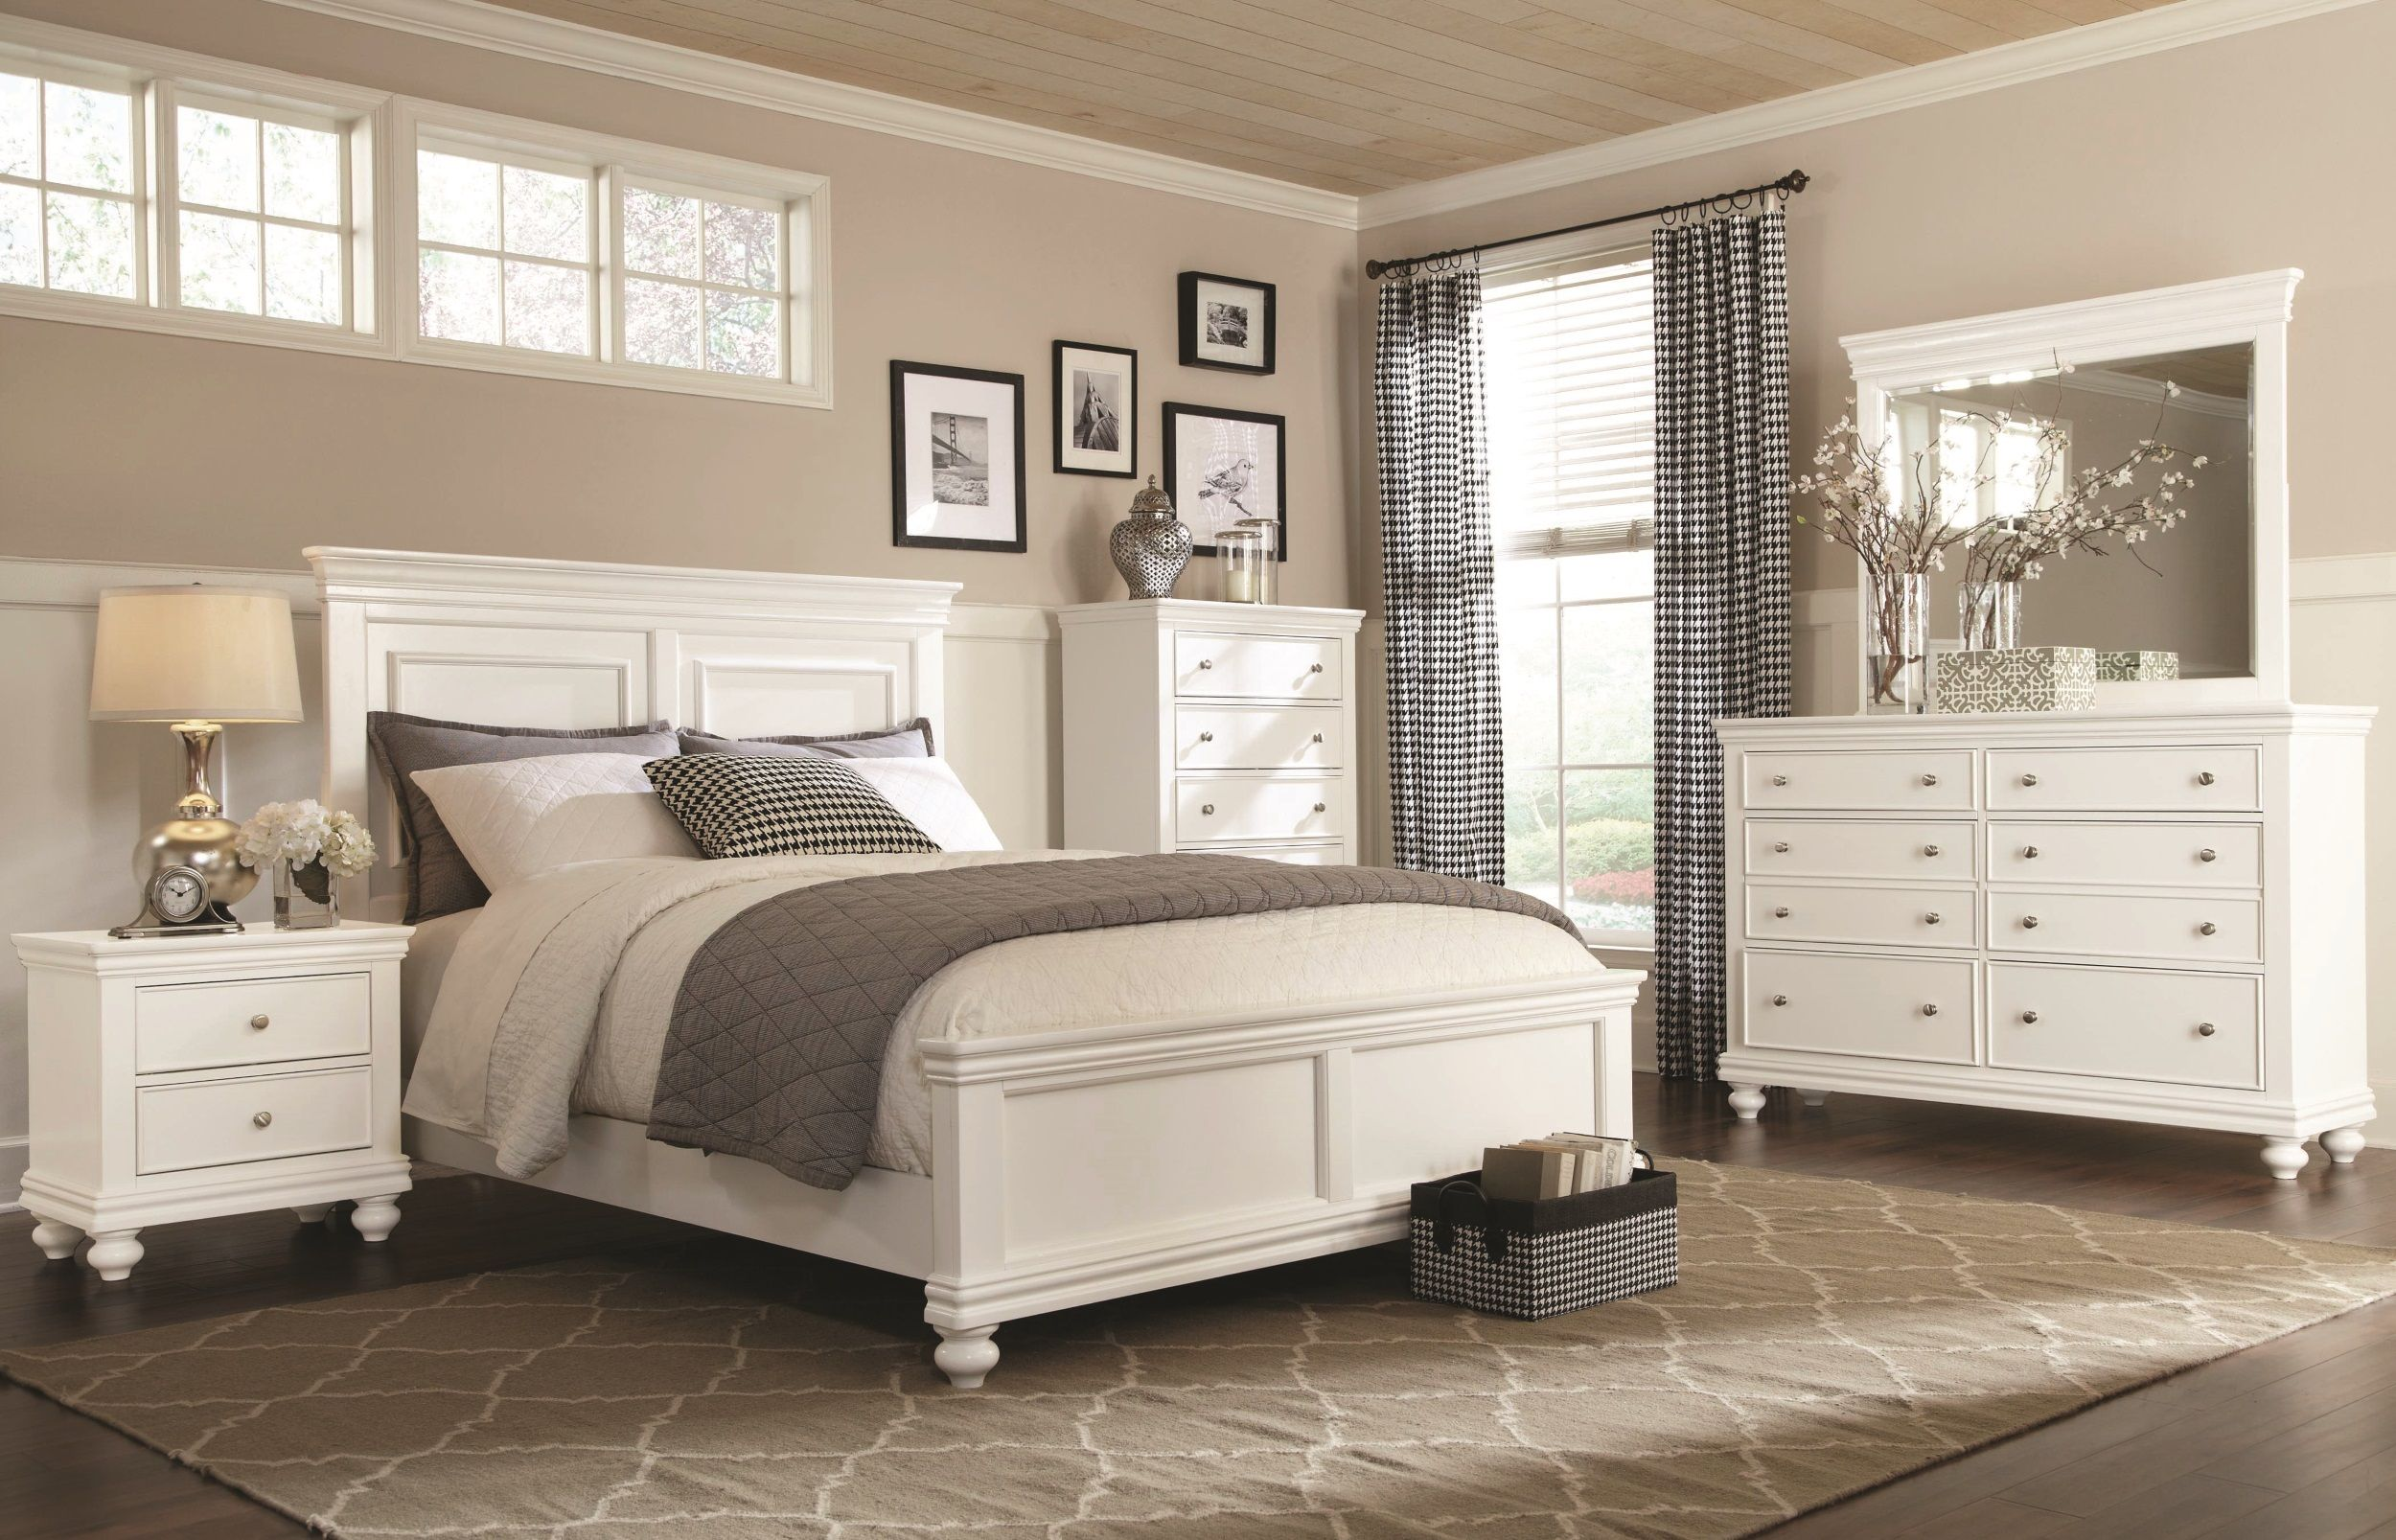 Fancy Bedroom Sets Alluring What Do You Think Of White Bedroom Sets Love 'em Or Hate 'em Design Decoration